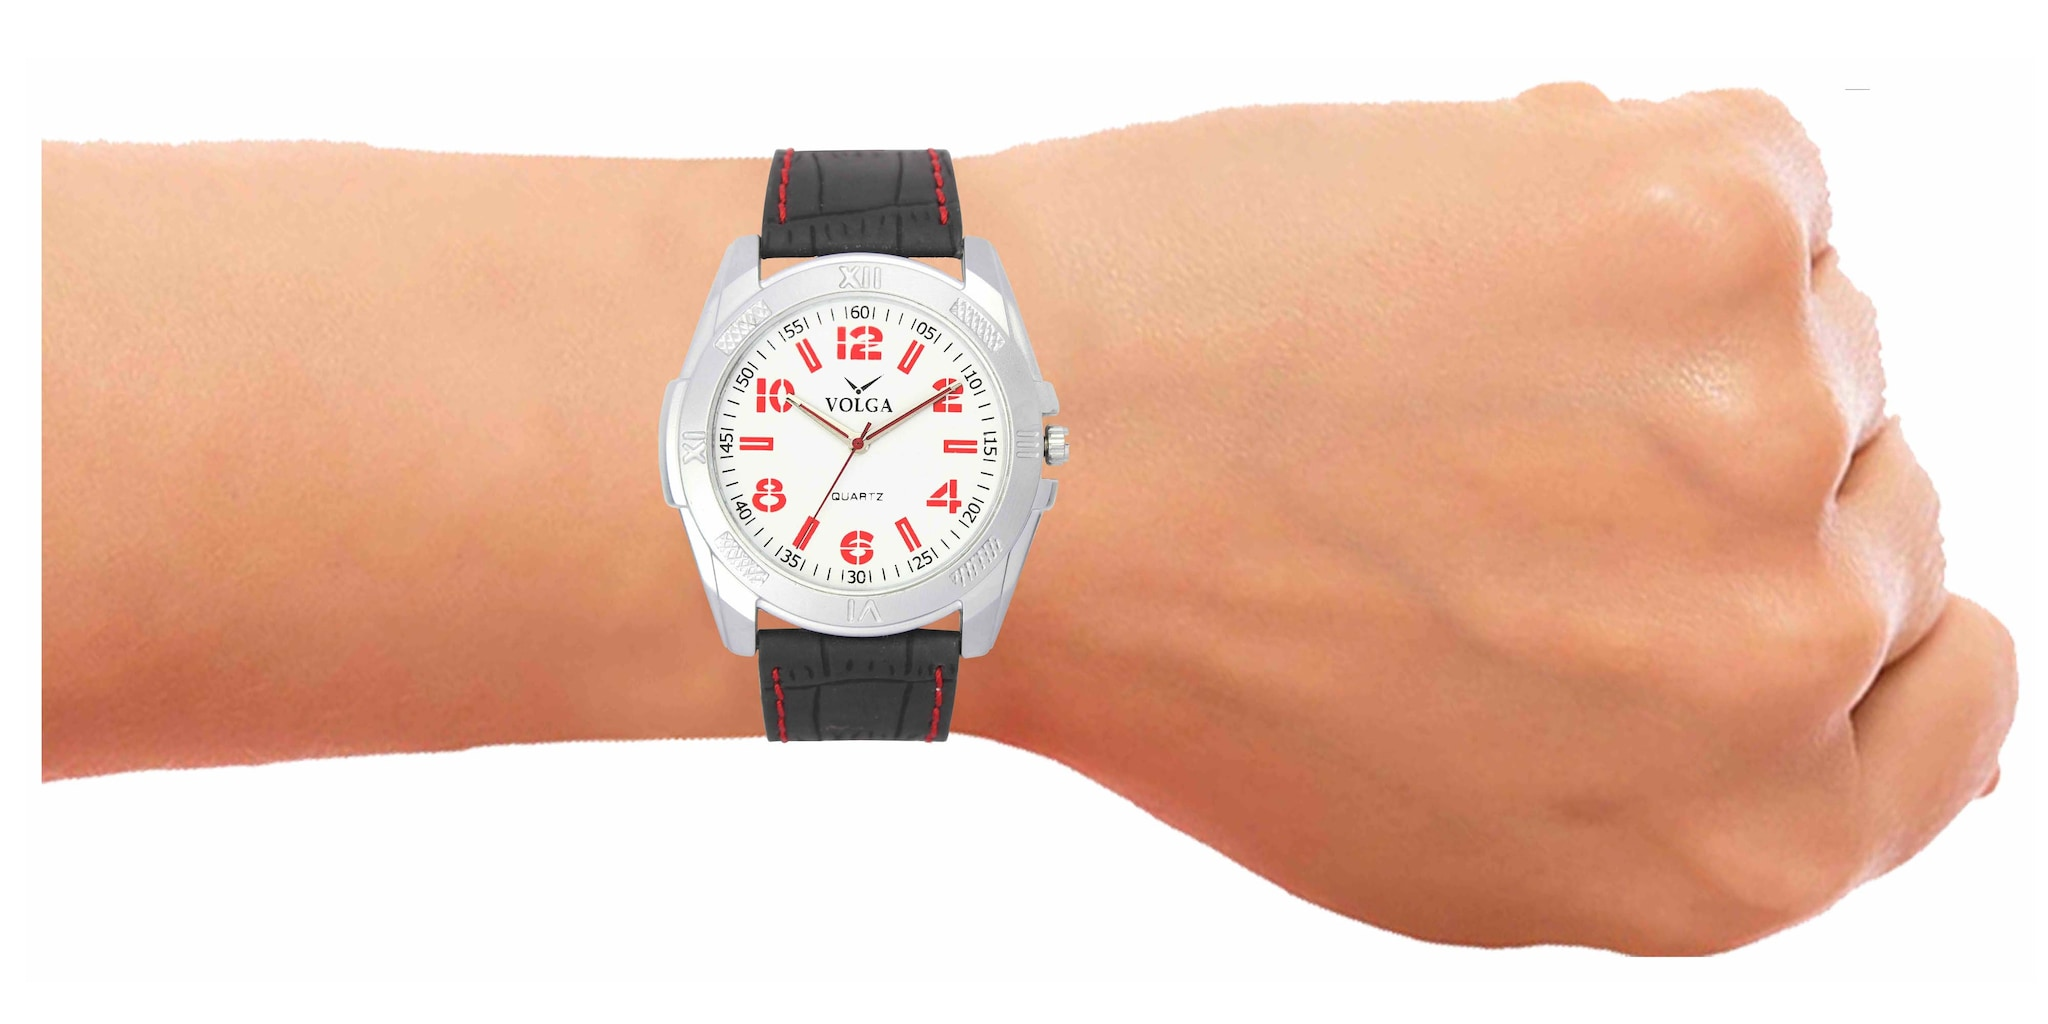 Volga Collection Quartz Movement New Professional White Dial And Black Leather Strap Watch For Boys And Men